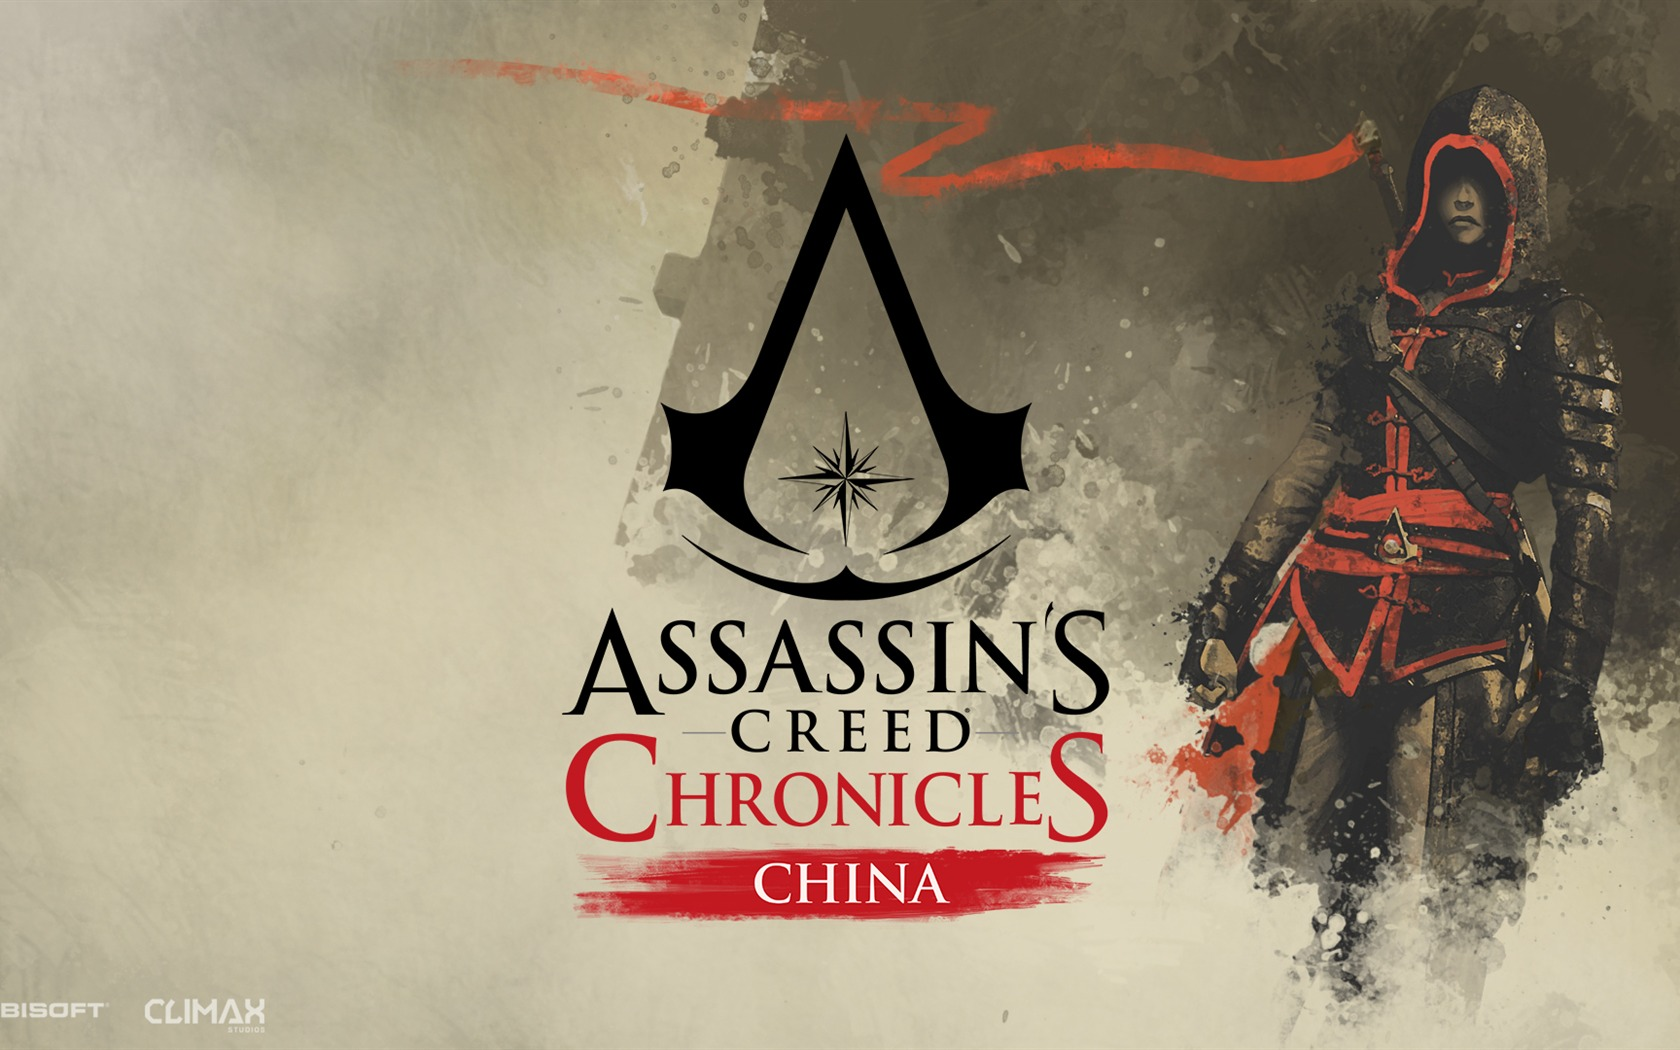 Assassins Creed Chronicles 2016 Game Hd Wallpaper 08 Preview